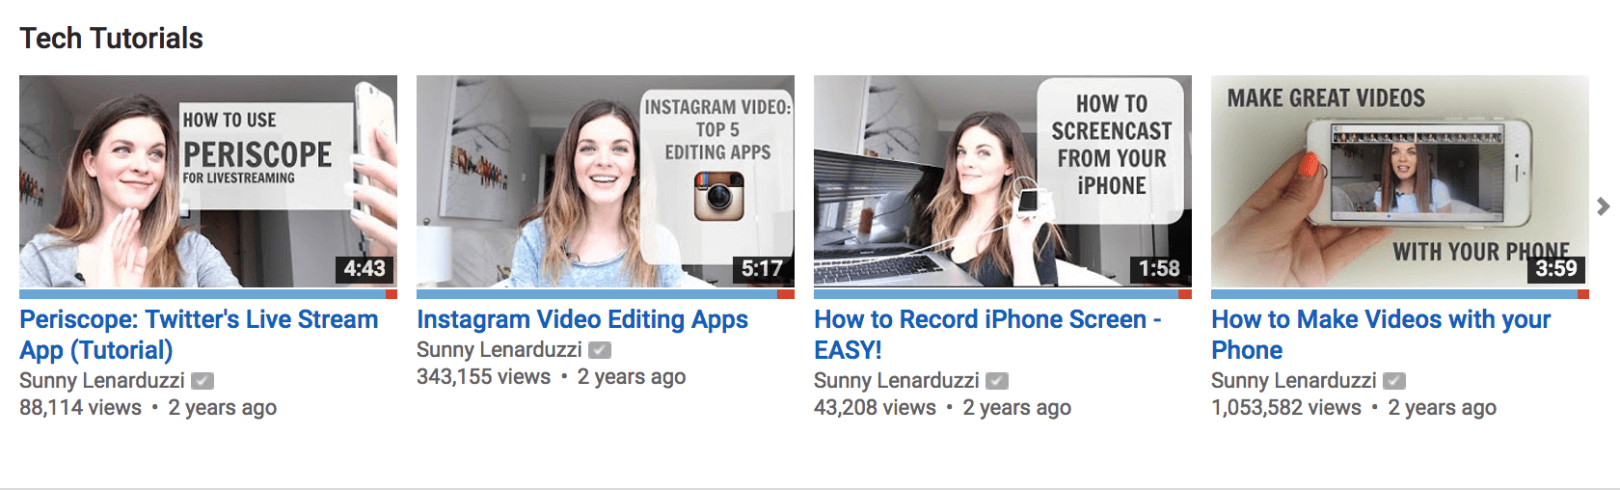 Brand your YouTube video content with company logo and messaging